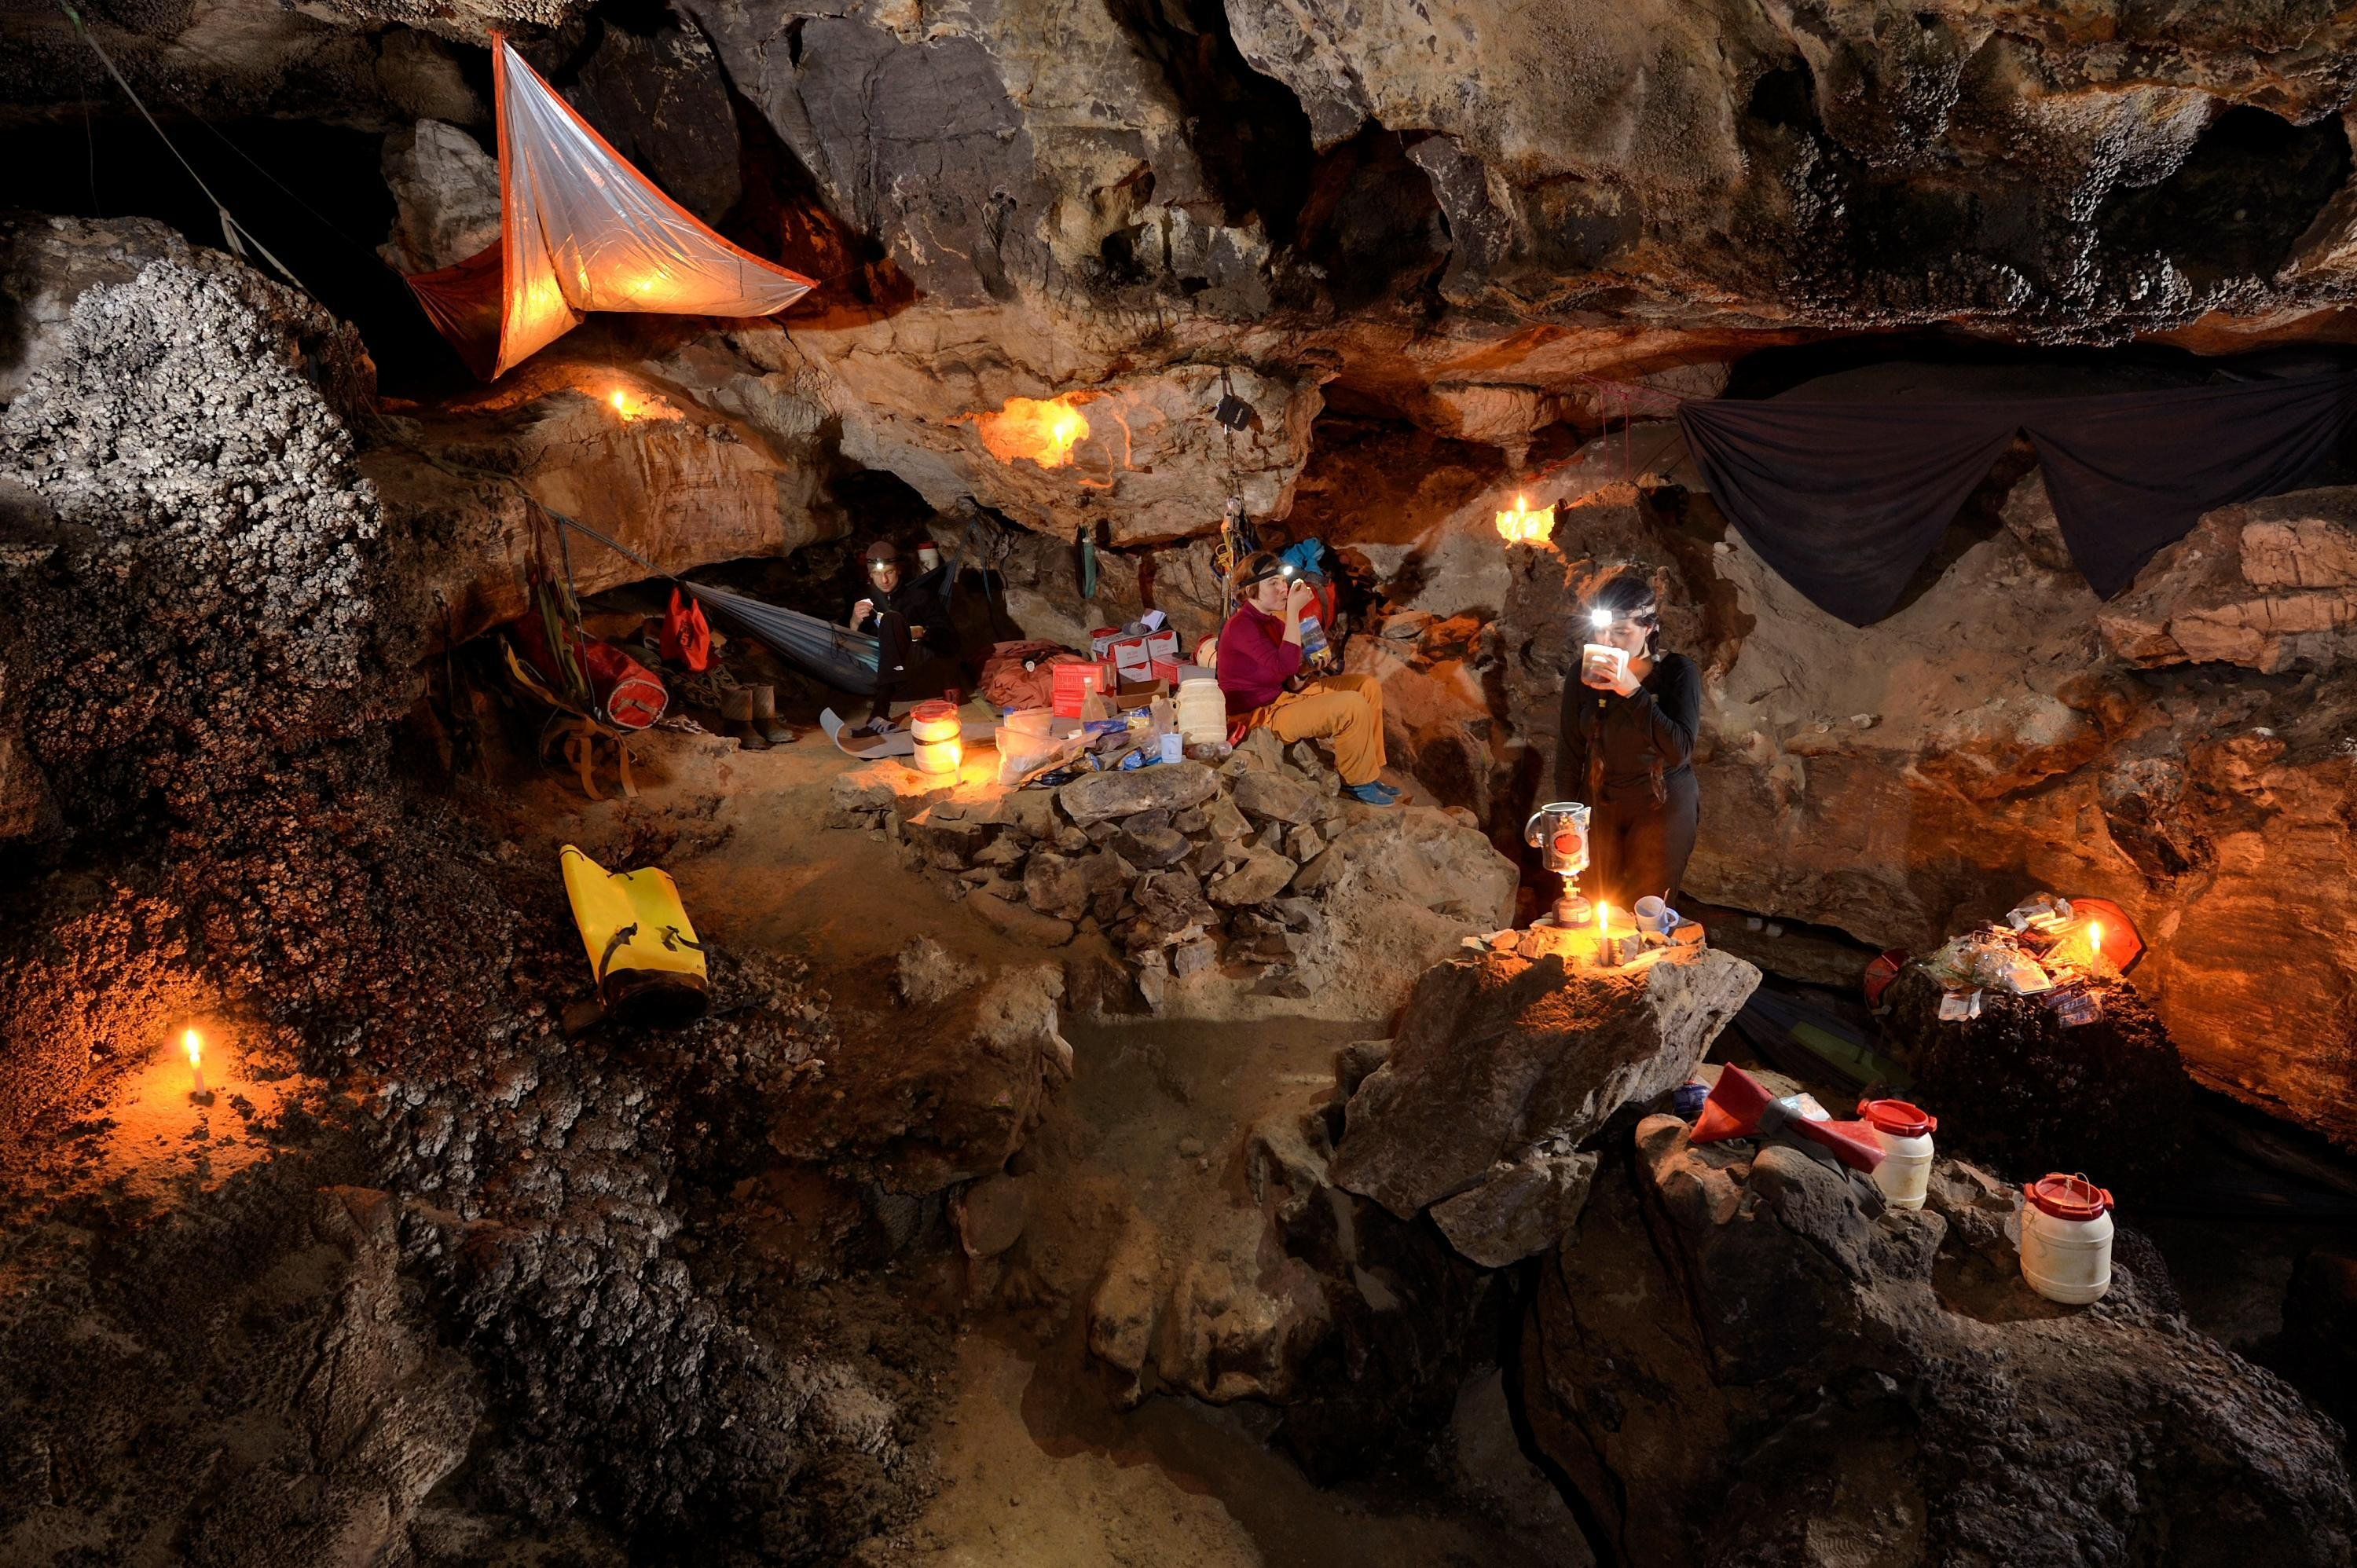 The underground camp in Sang Wang Dong is a cosy and warm place to stay. Hot food and drink recharge weary and tired explorers before taking a few hours sleep in either suspended hammocks or on roll mats on the floor